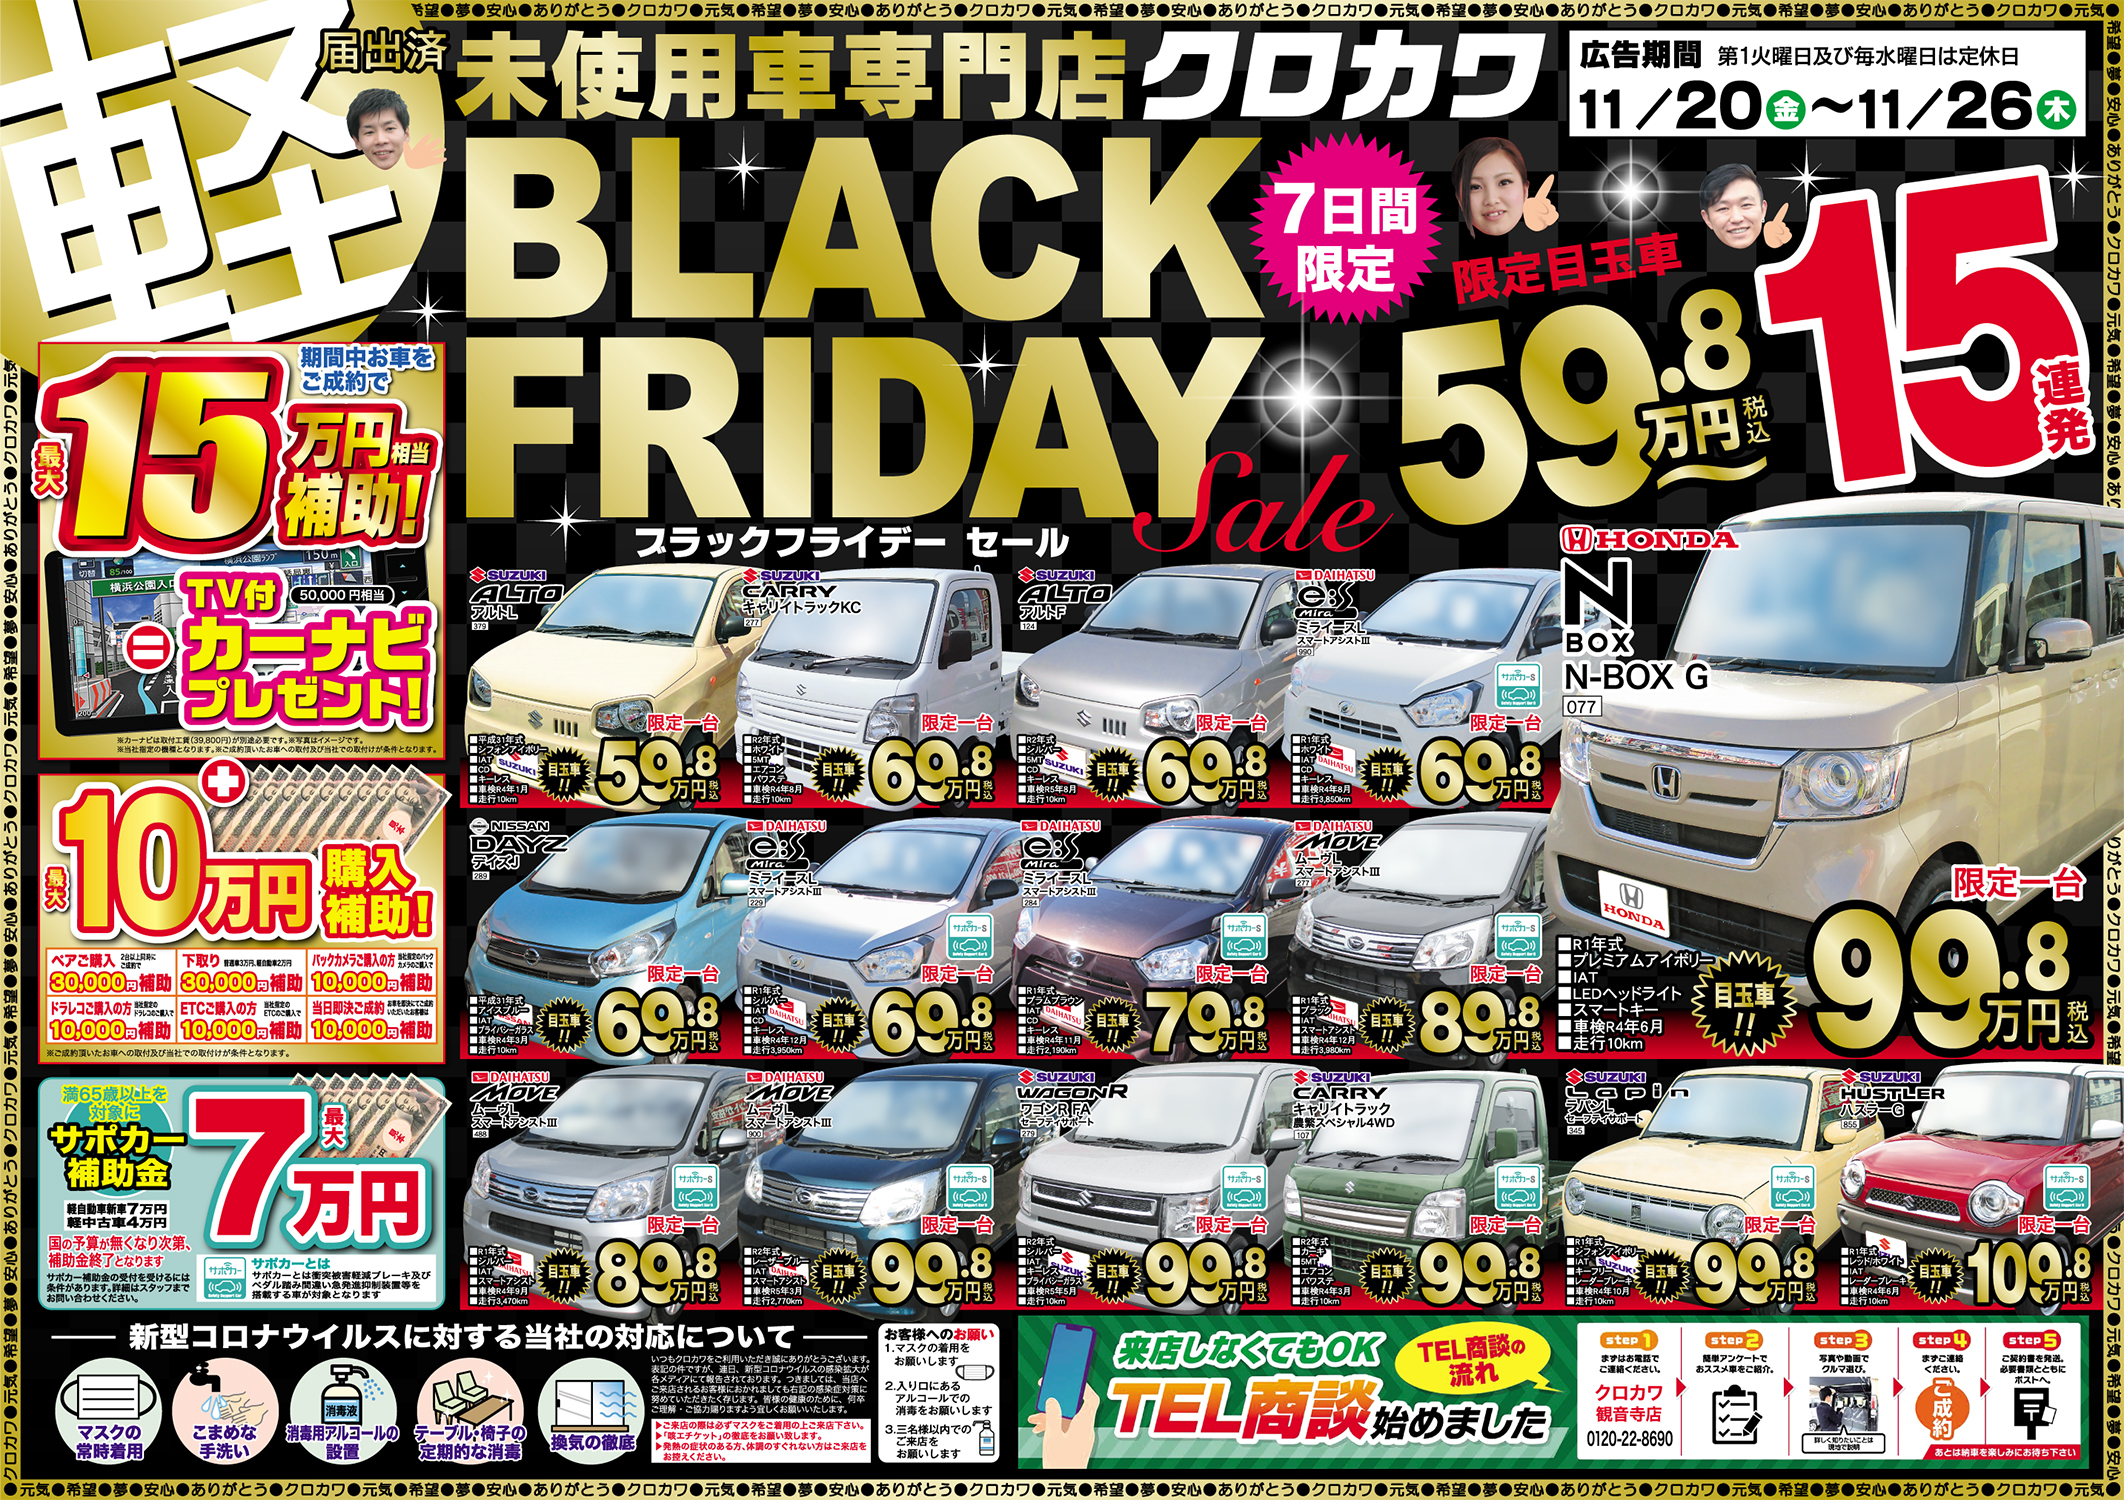 【BLACK FRIDAY SALE】目玉車59.8万円〜